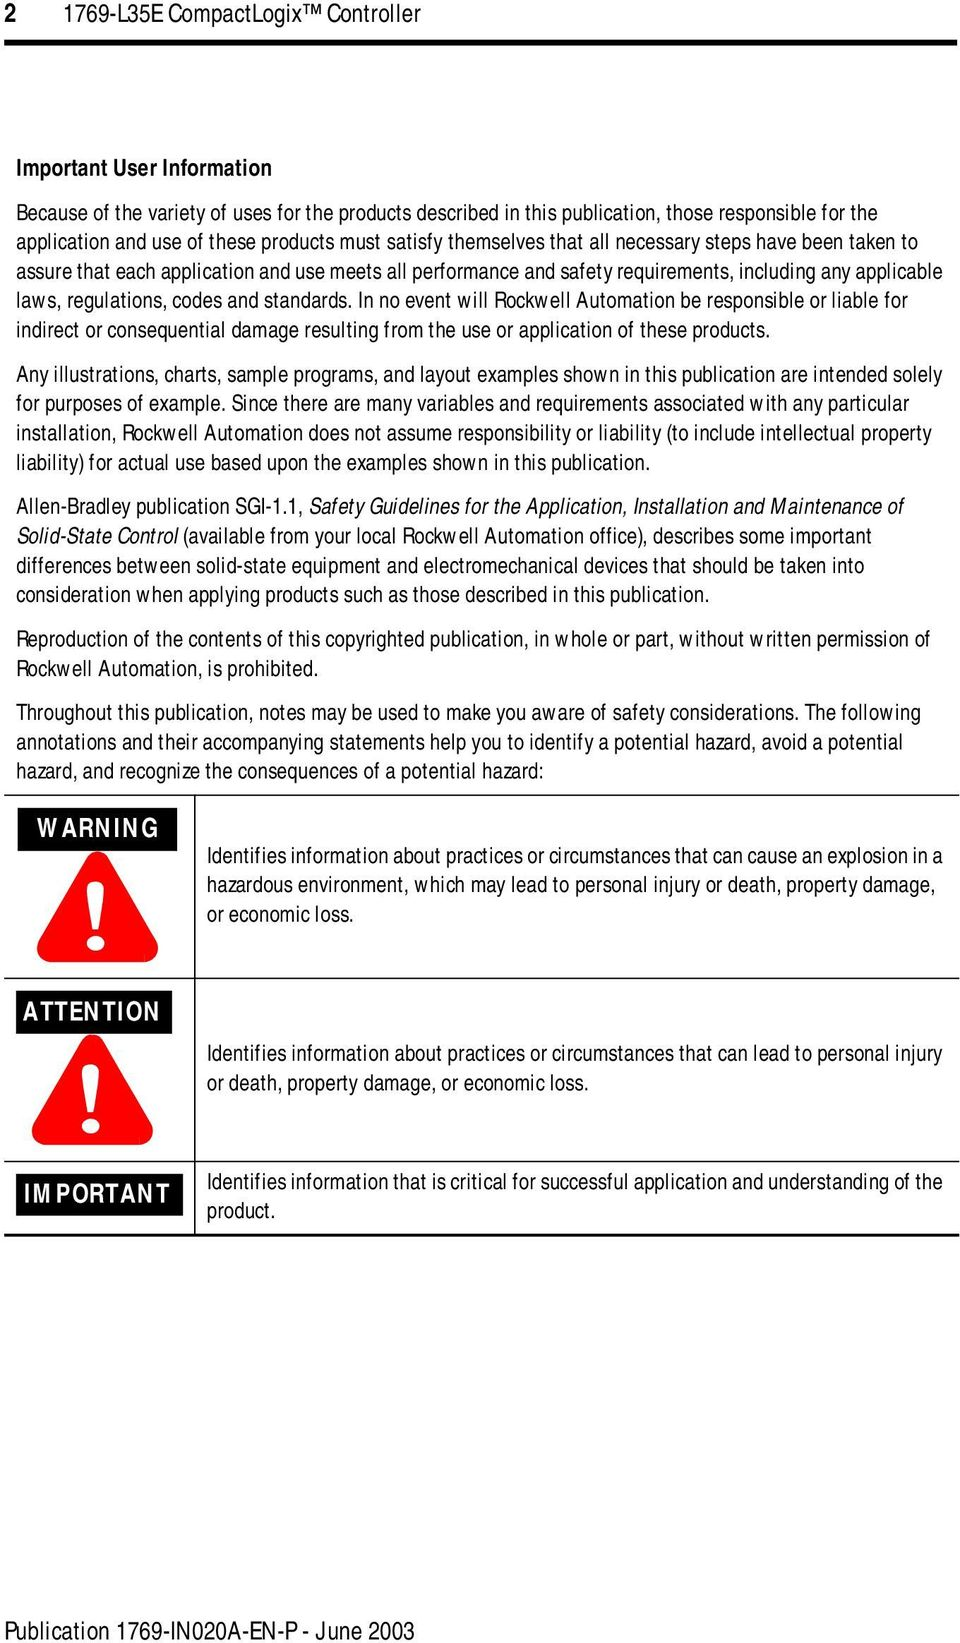 regulations, codes and standards. In no event will Rockwell Automation be responsible or liable for indirect or consequential damage resulting from the use or application of these products.